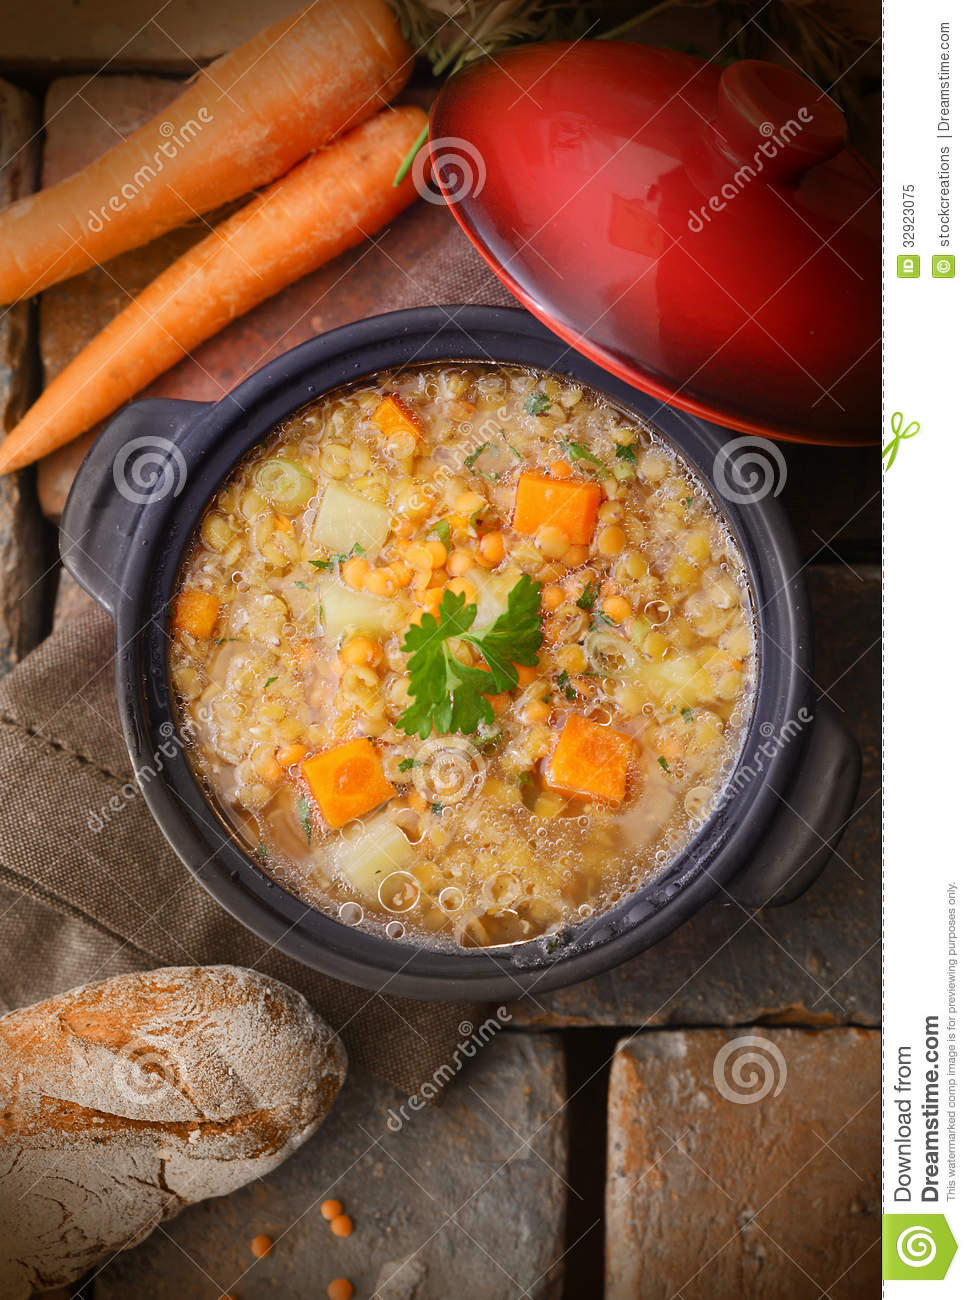 Overhead view of a pot of tasty wholesome thick vegetable soup or stew ...